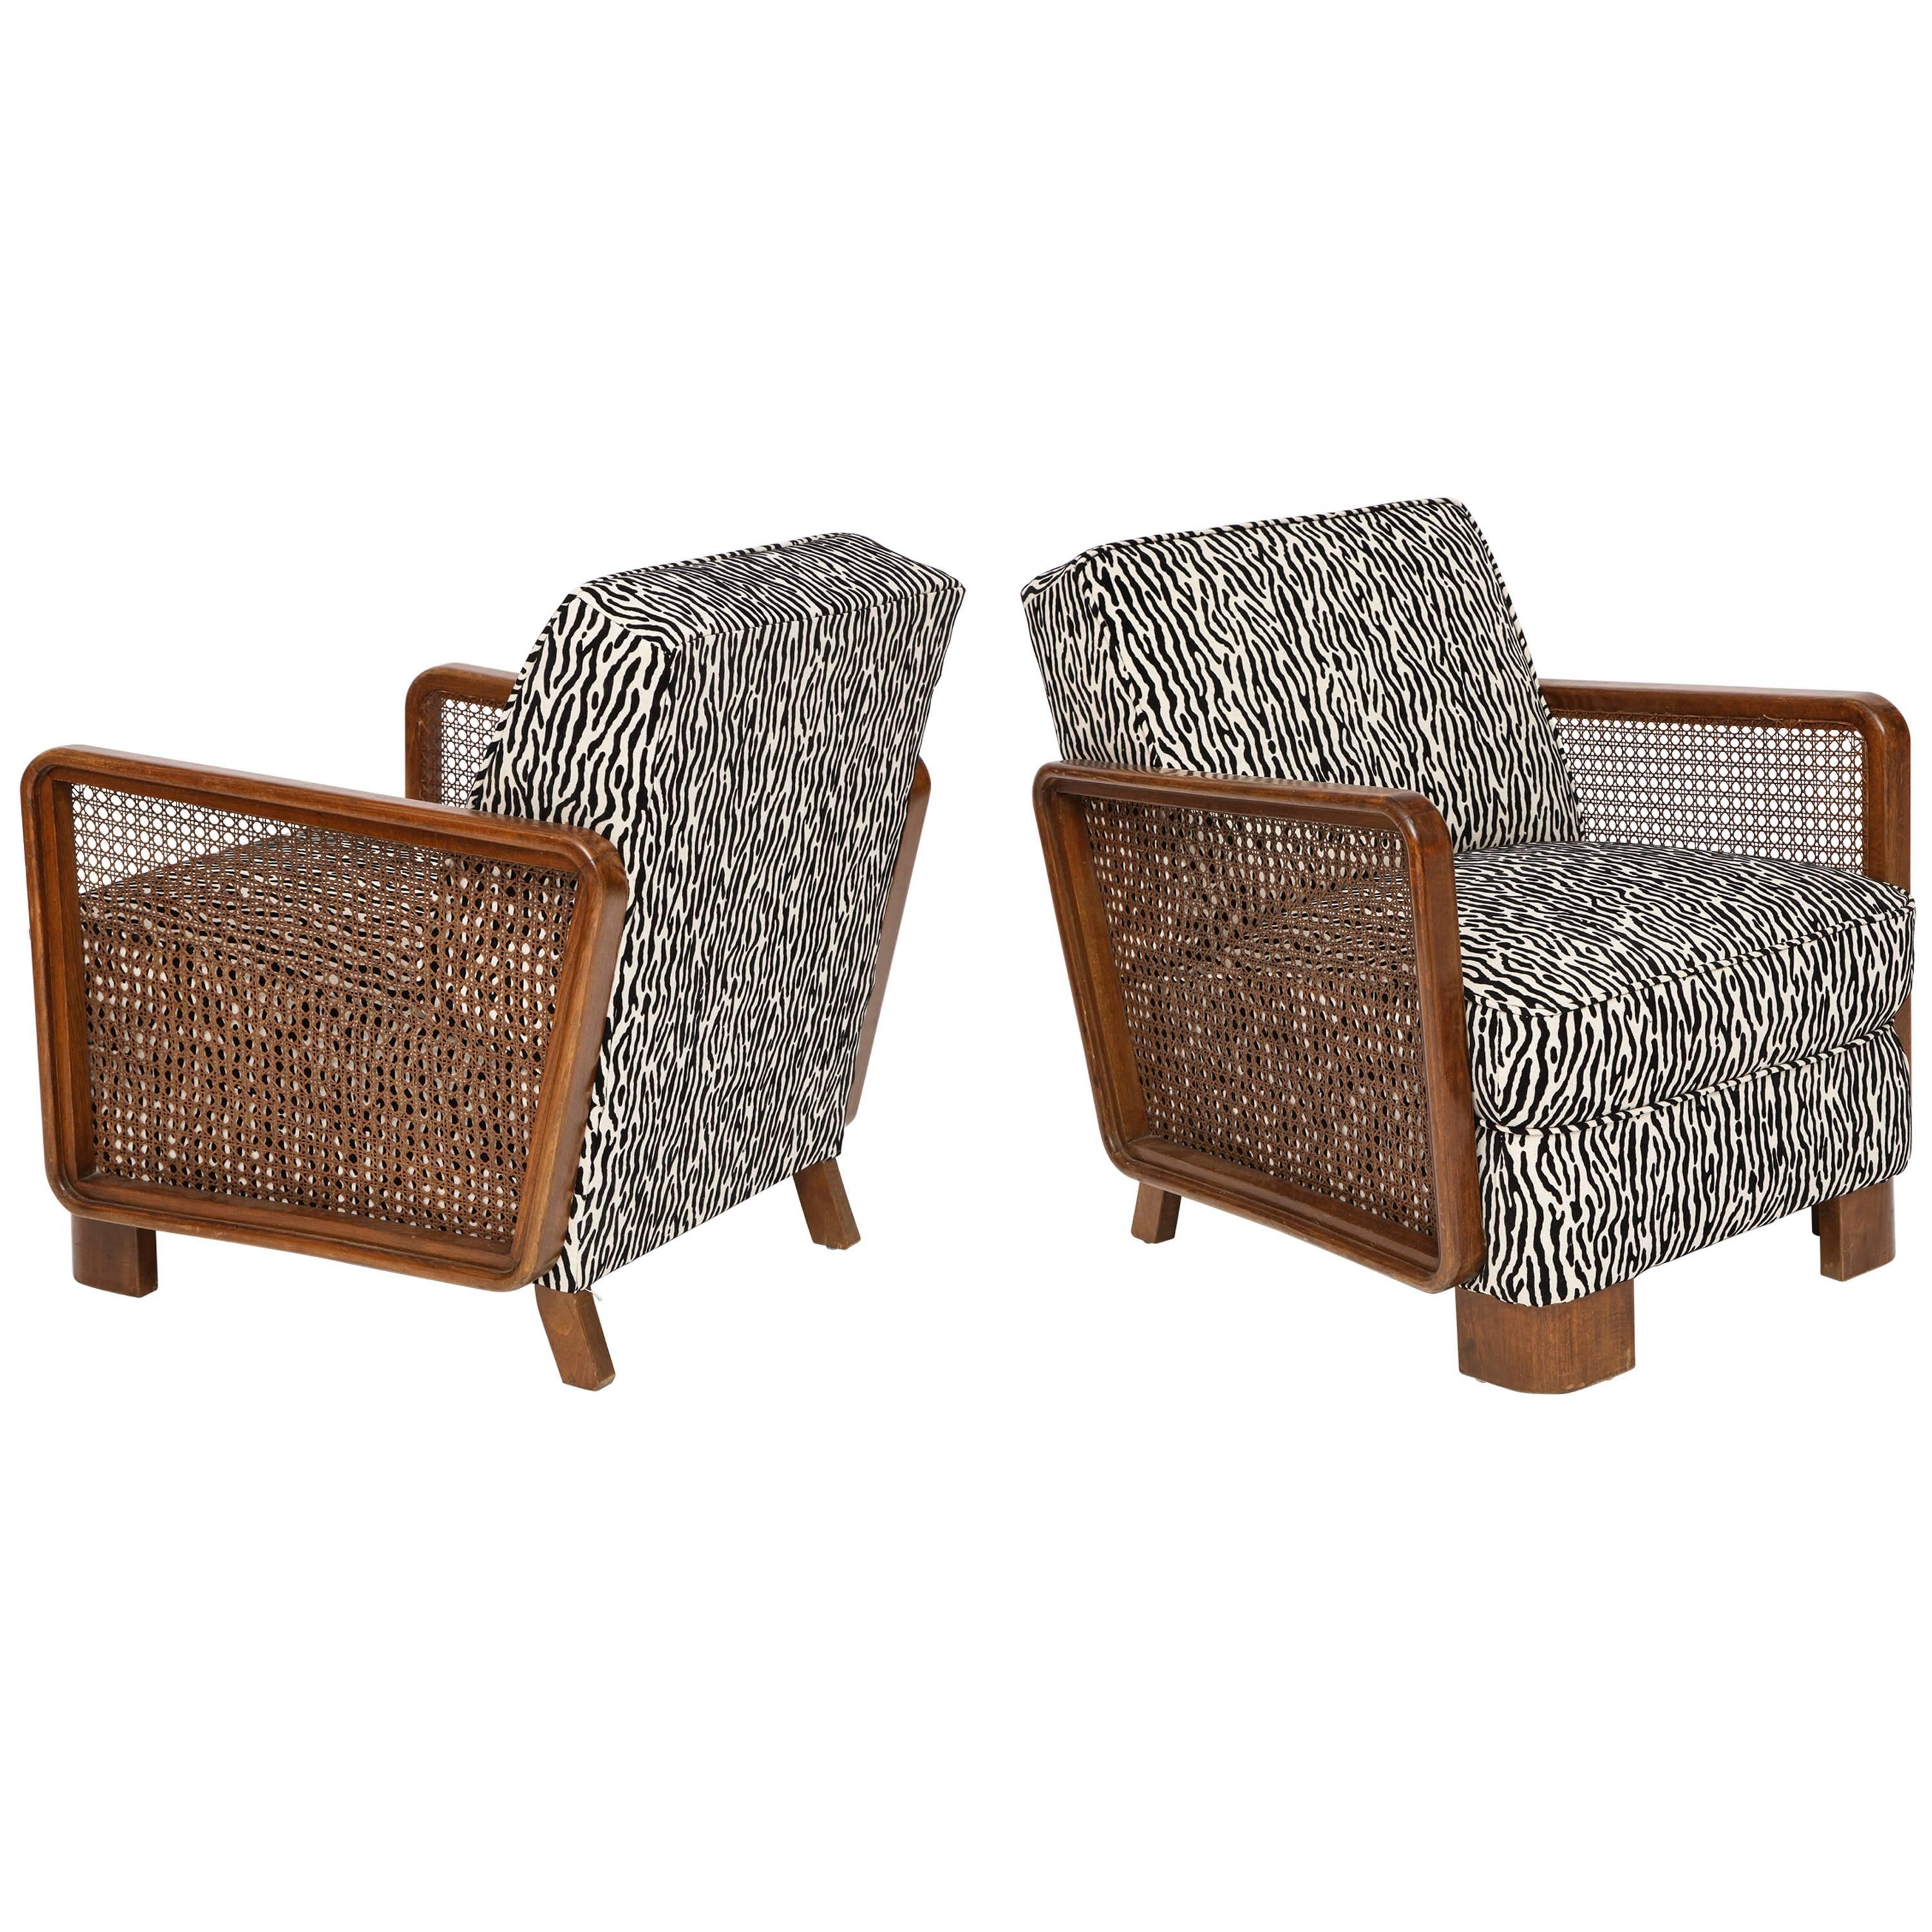 Pair Of Deco Cane Lounge Chairs Black And White Animal Print France 1940s At 1stdibs